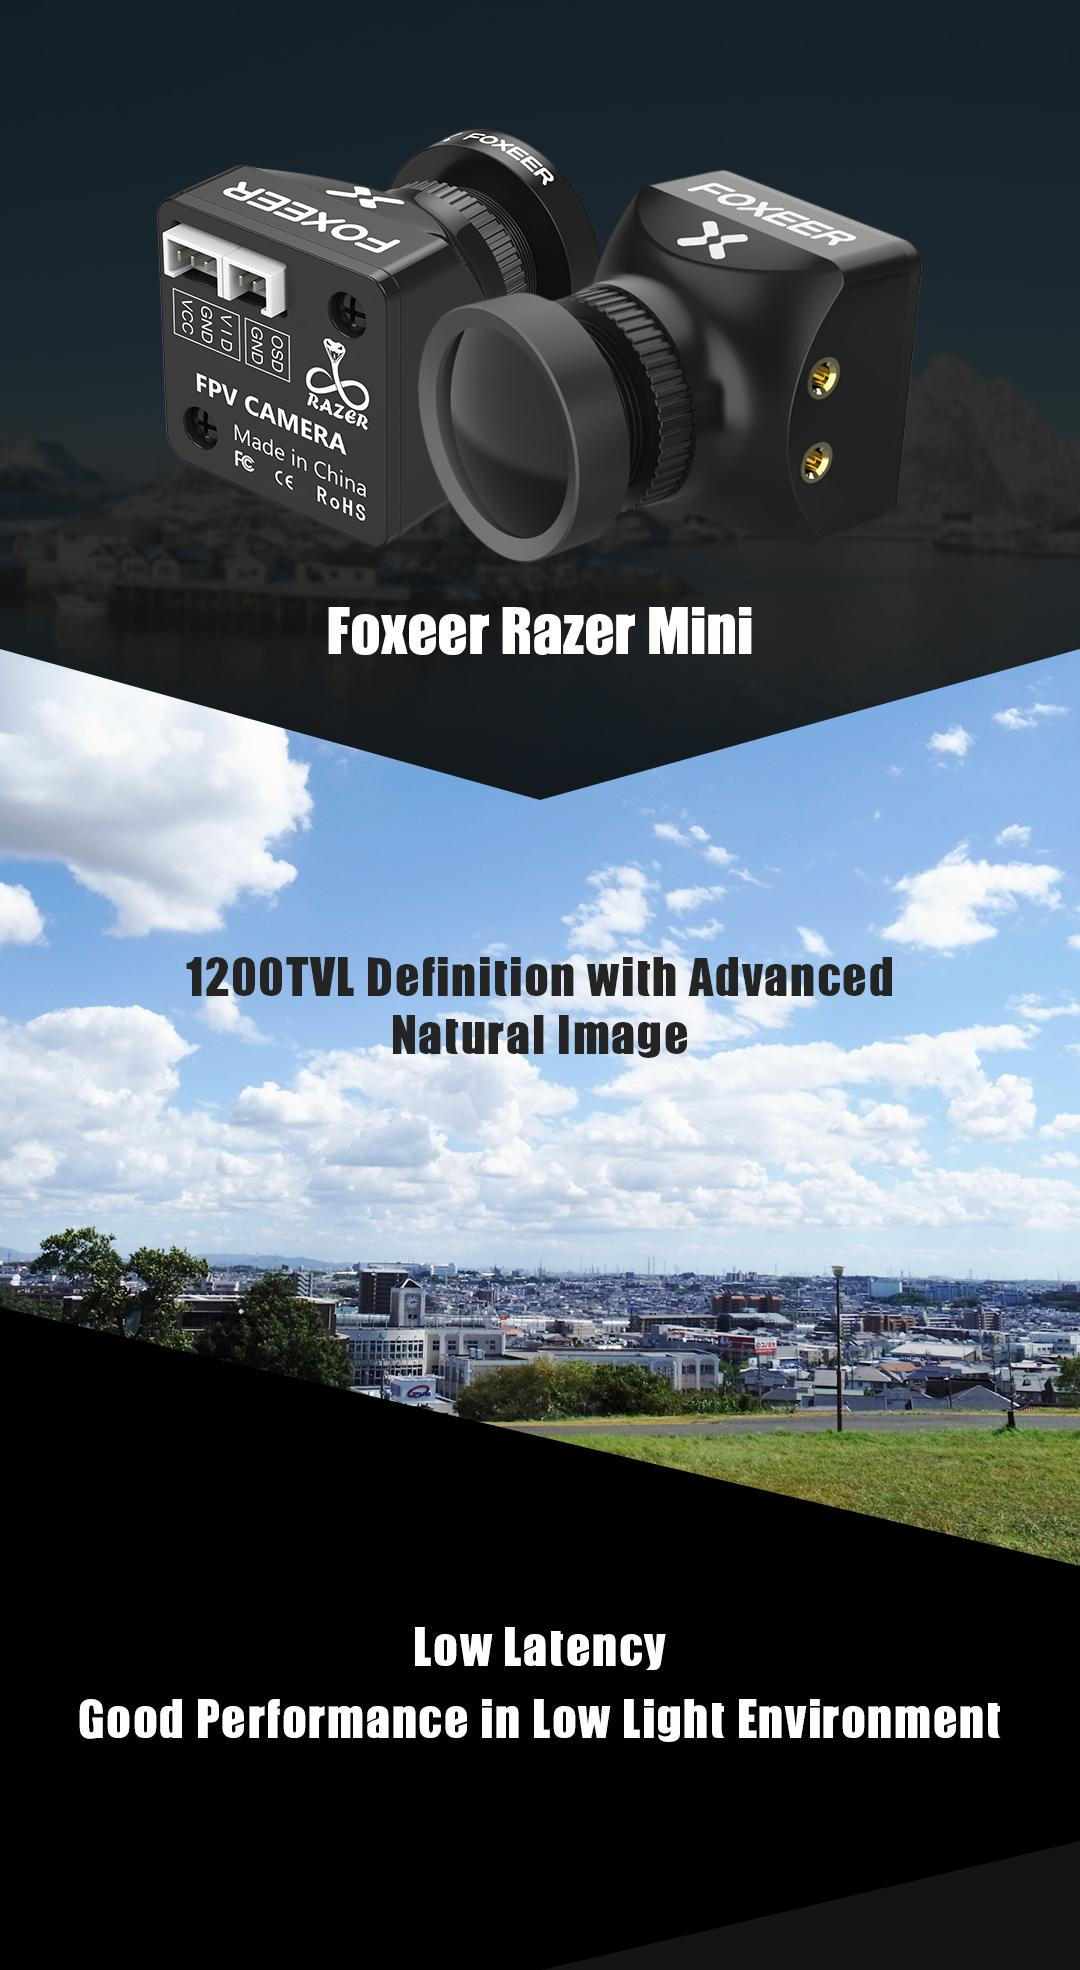 foxeer razer specs and low latency